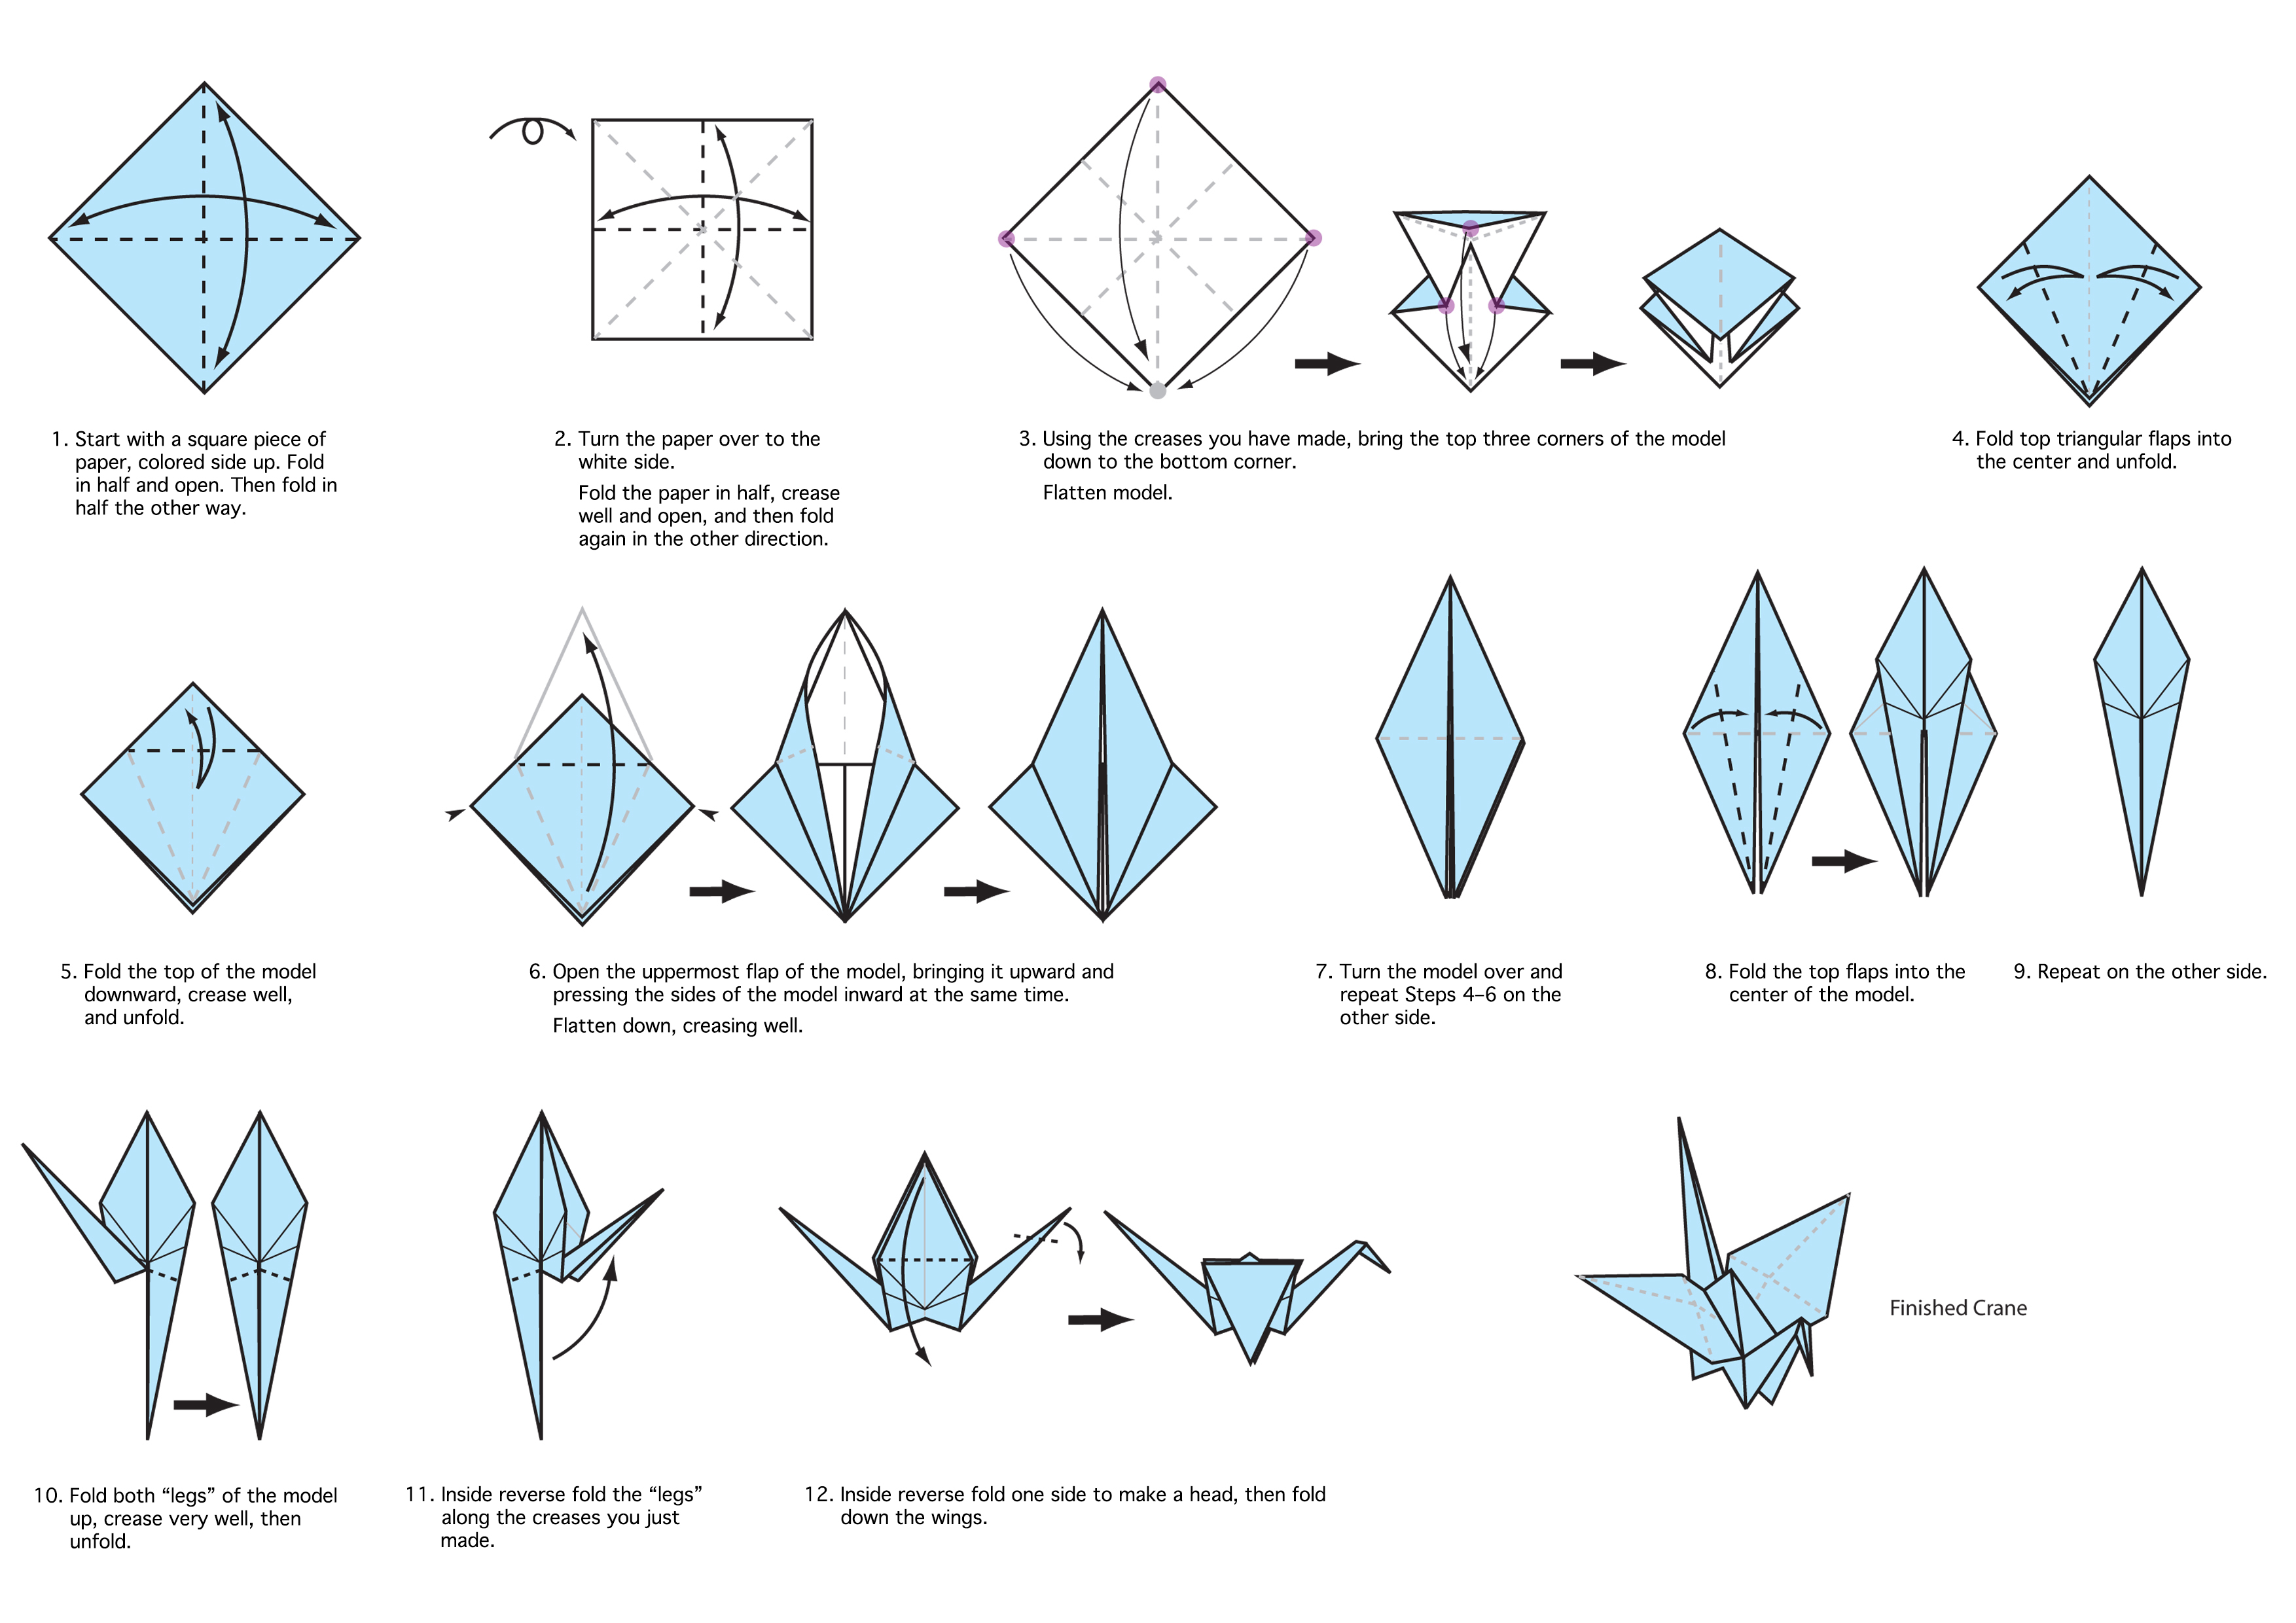 My chicago botanic garden tag archive origami download these instructions to create an origami crane mightylinksfo Image collections